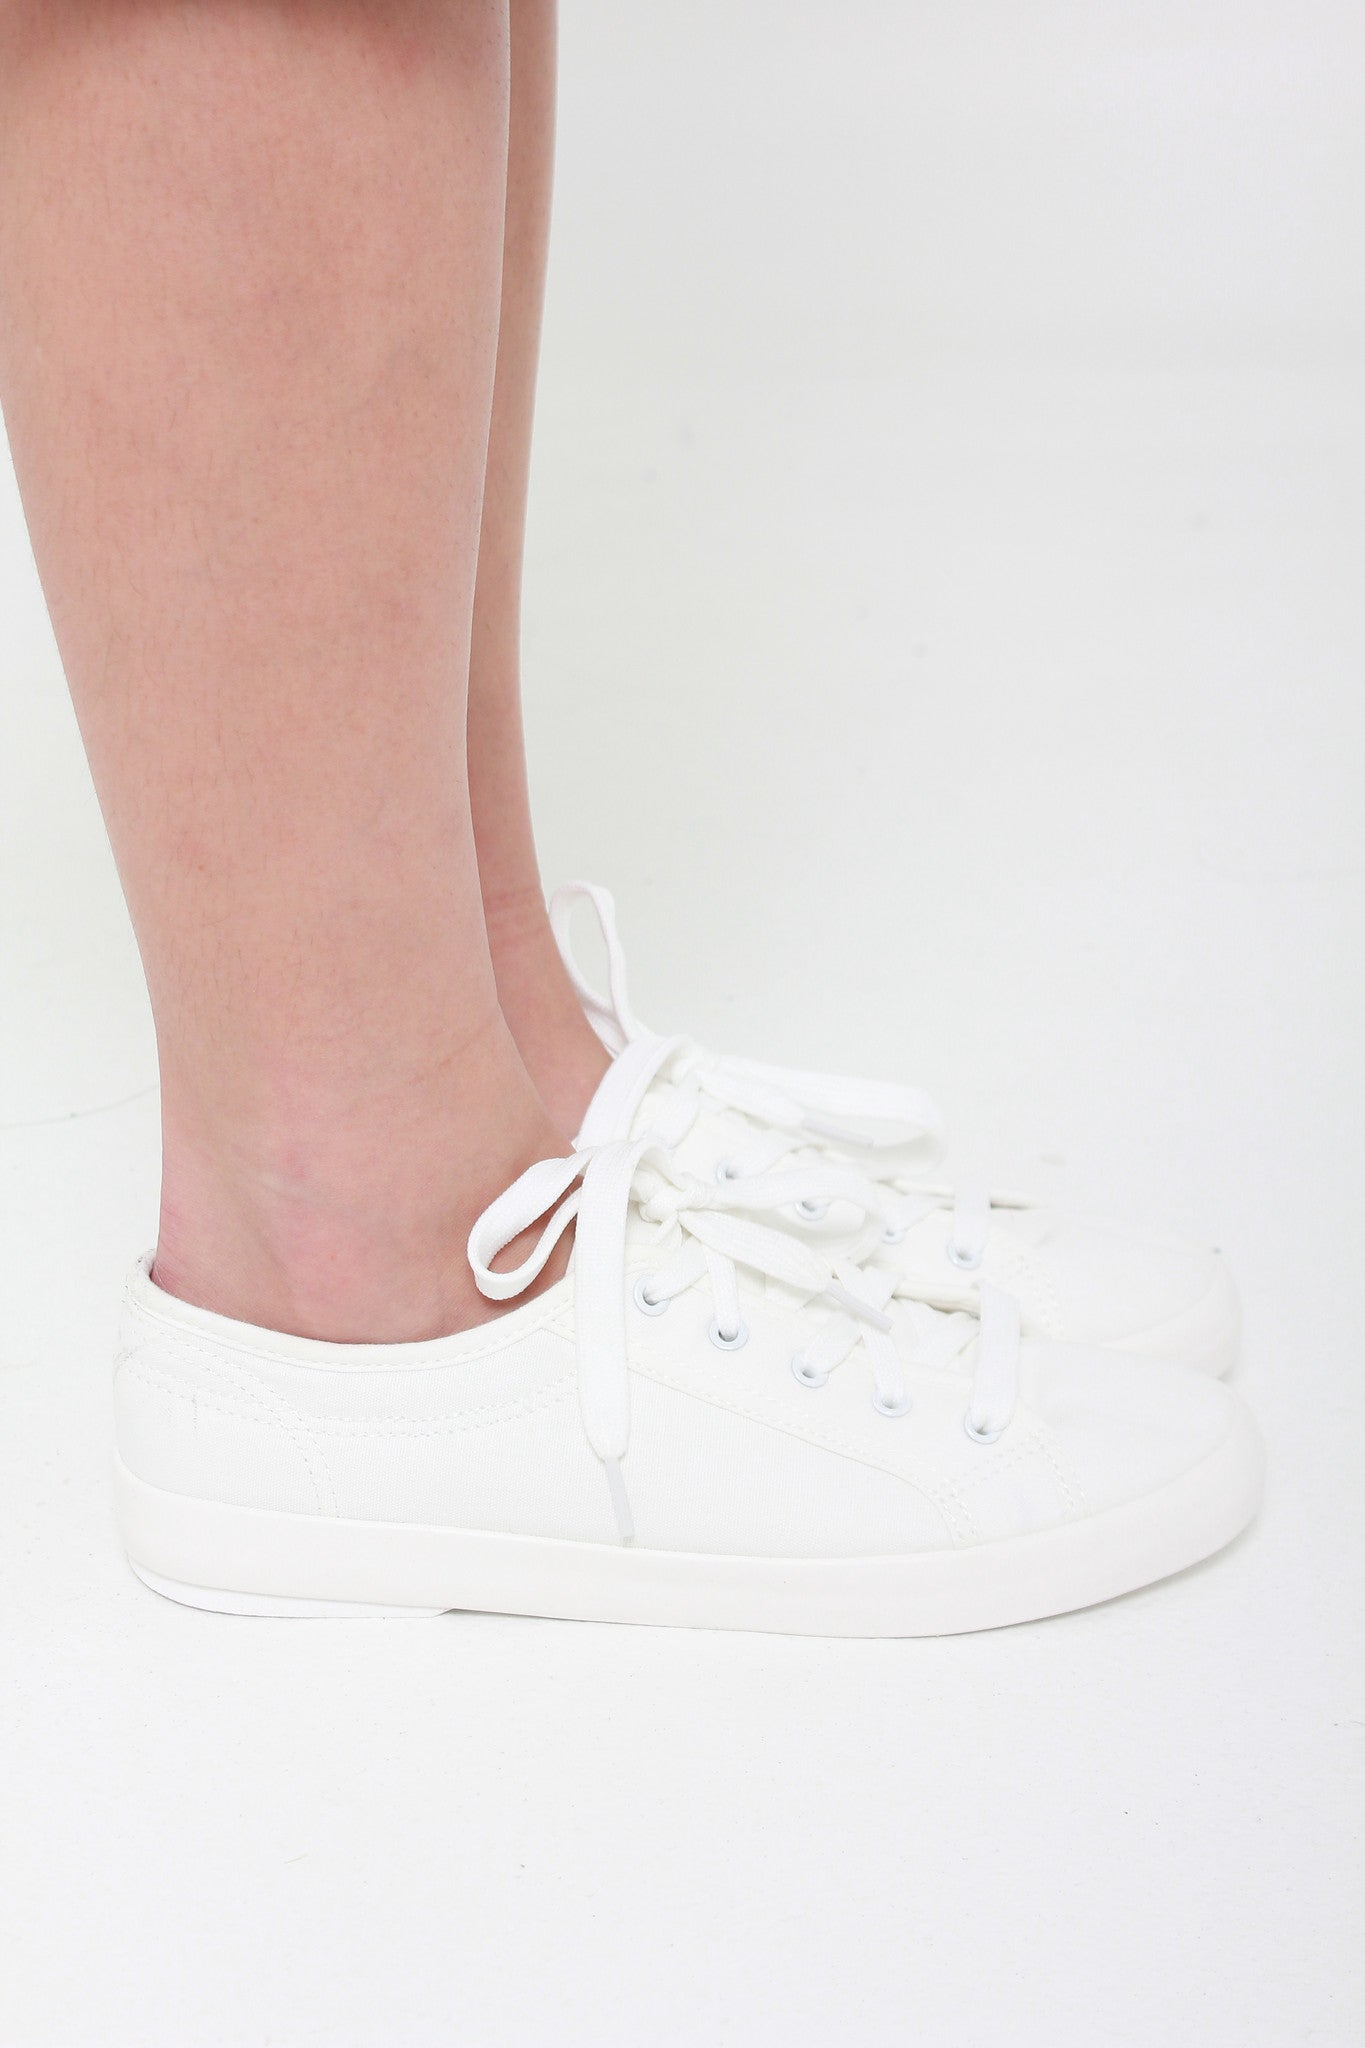 Causal Canvas Sneakers in White (PRE-ORDER)